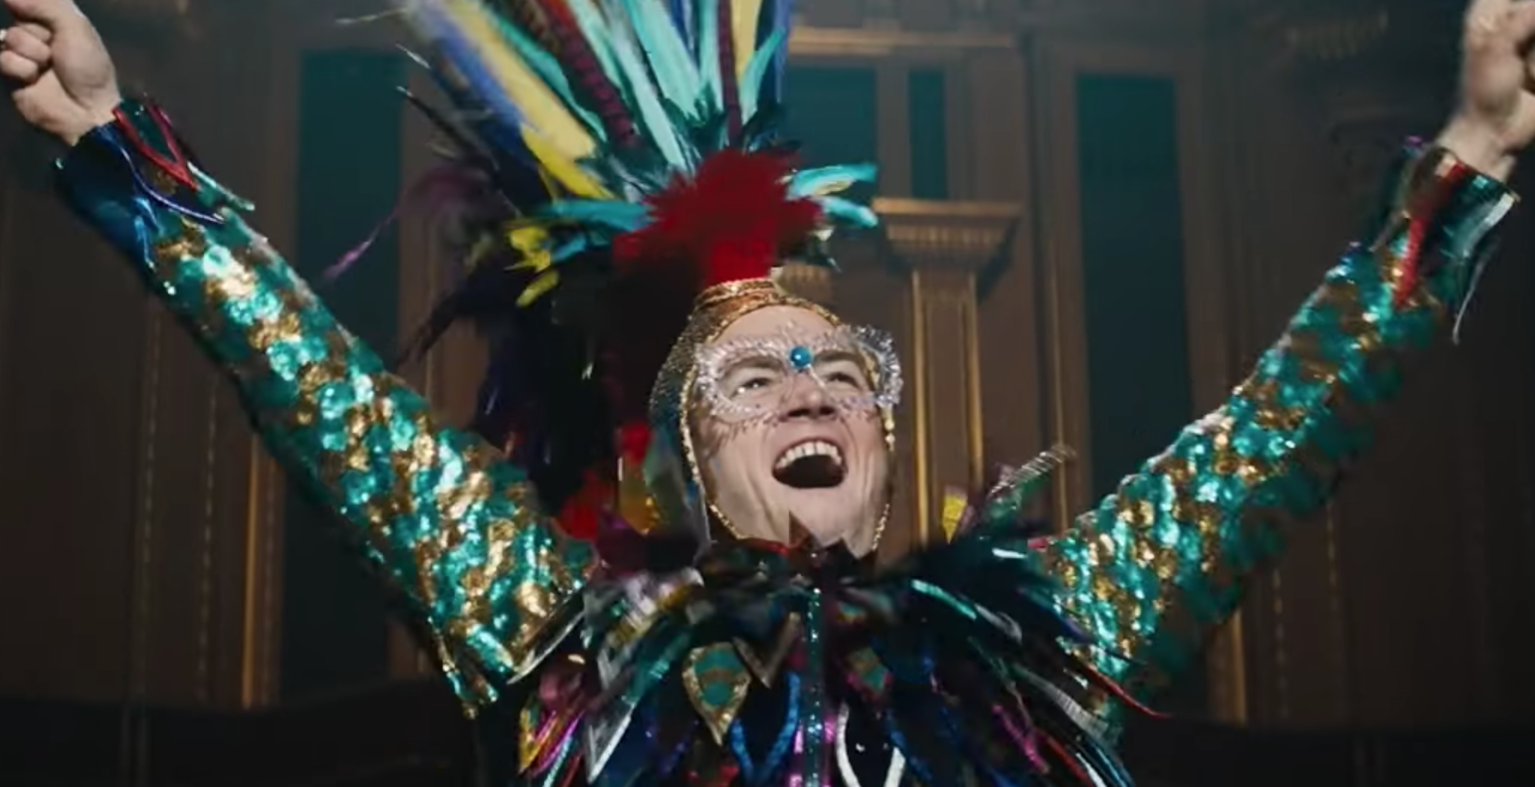 THE BOTTOMLESS SINGING CINEMA PRESENT: ROCKETMAN - MANCHESTER